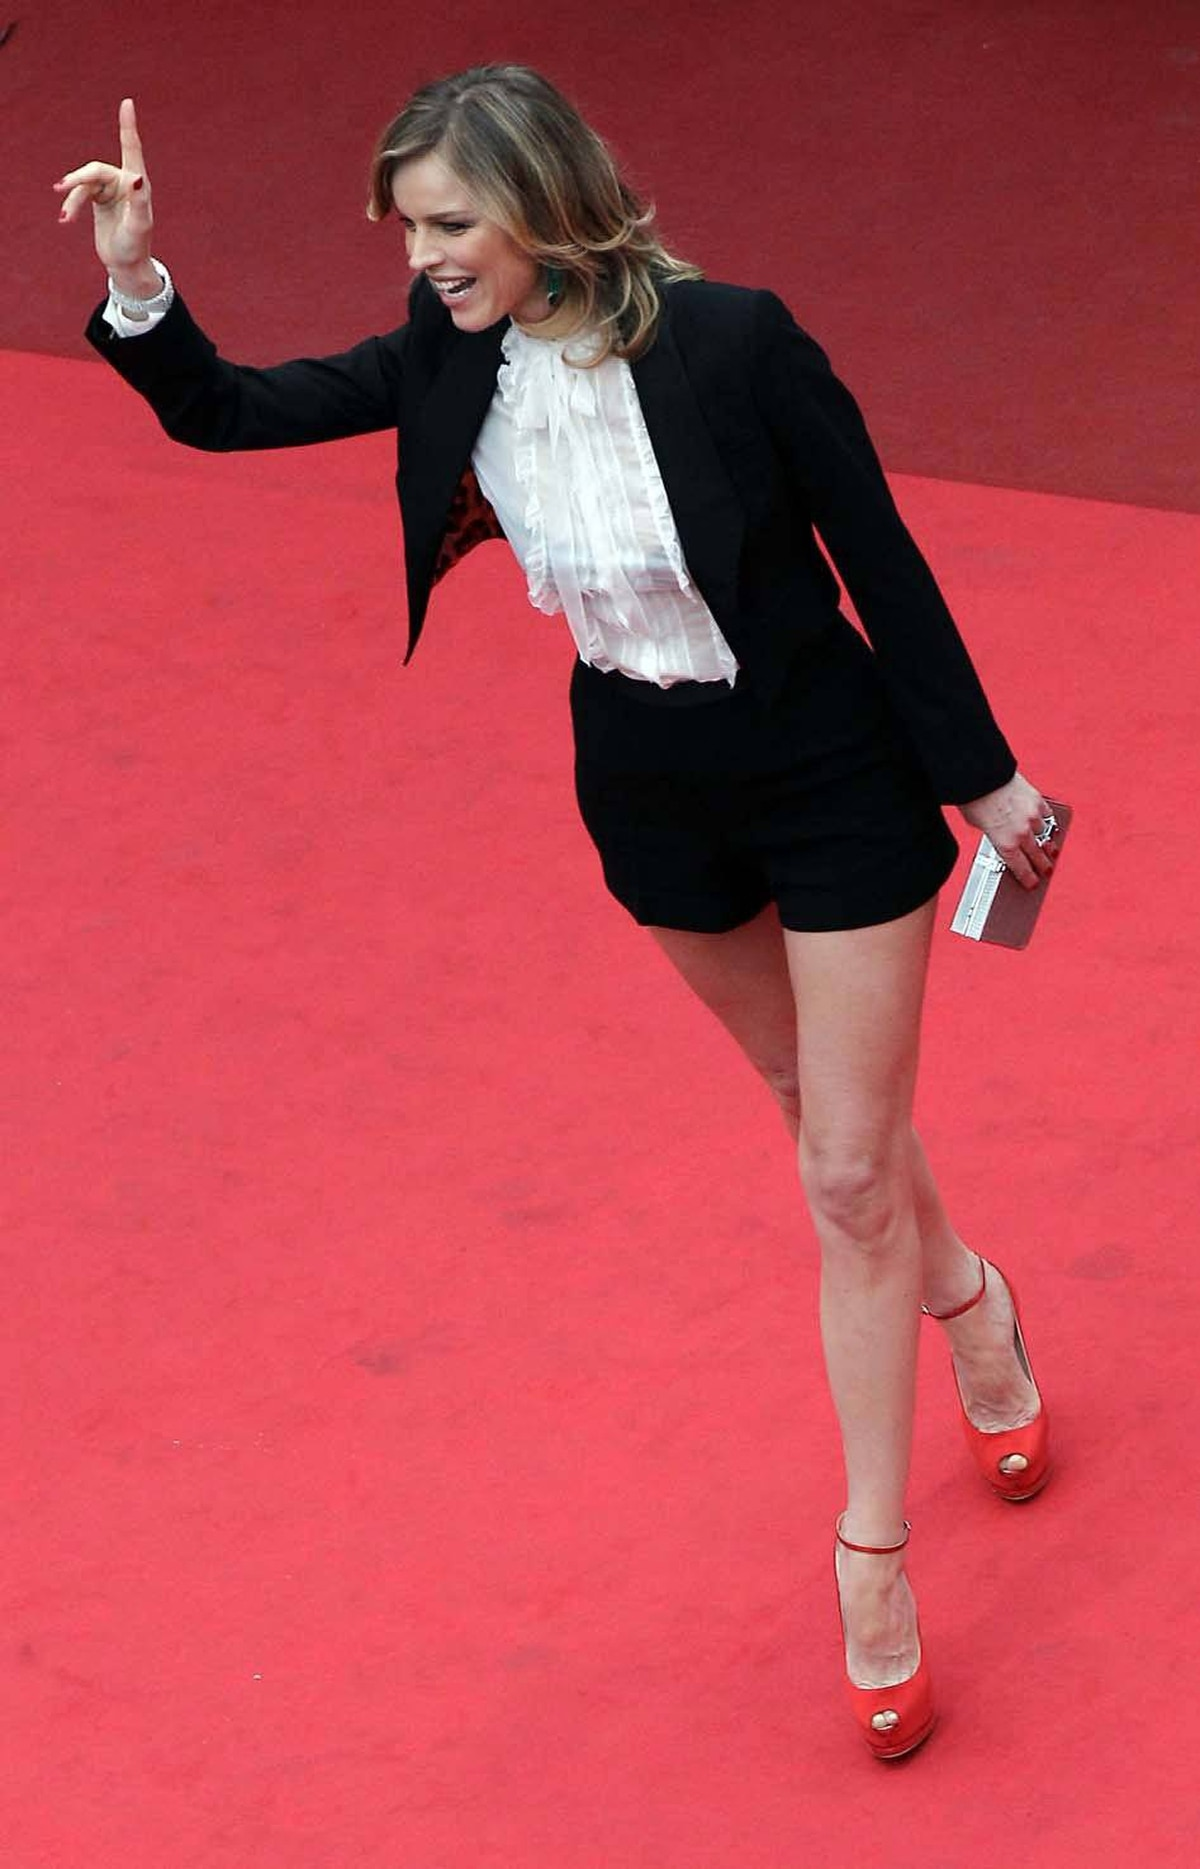 Model Eva Herzigova orders up a coffee on the red carpet at the Cannes Film Festival on Wednesday.